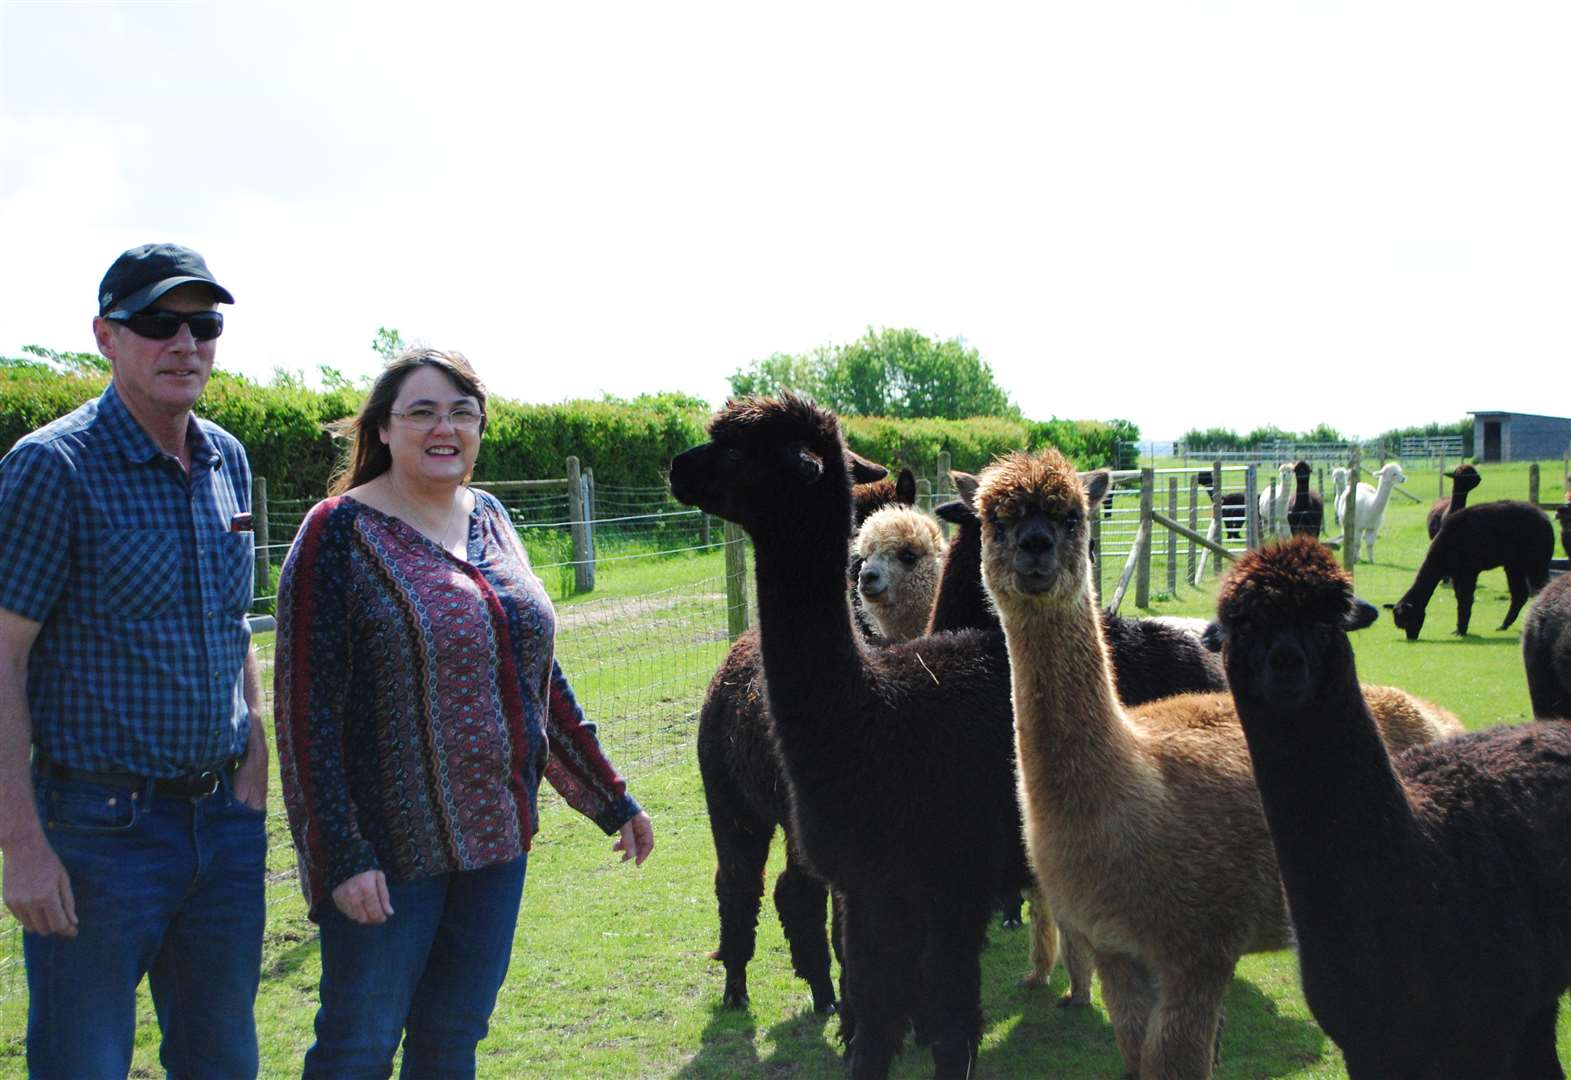 Alpaca tourism venture receives approval and plans to open by Xmas